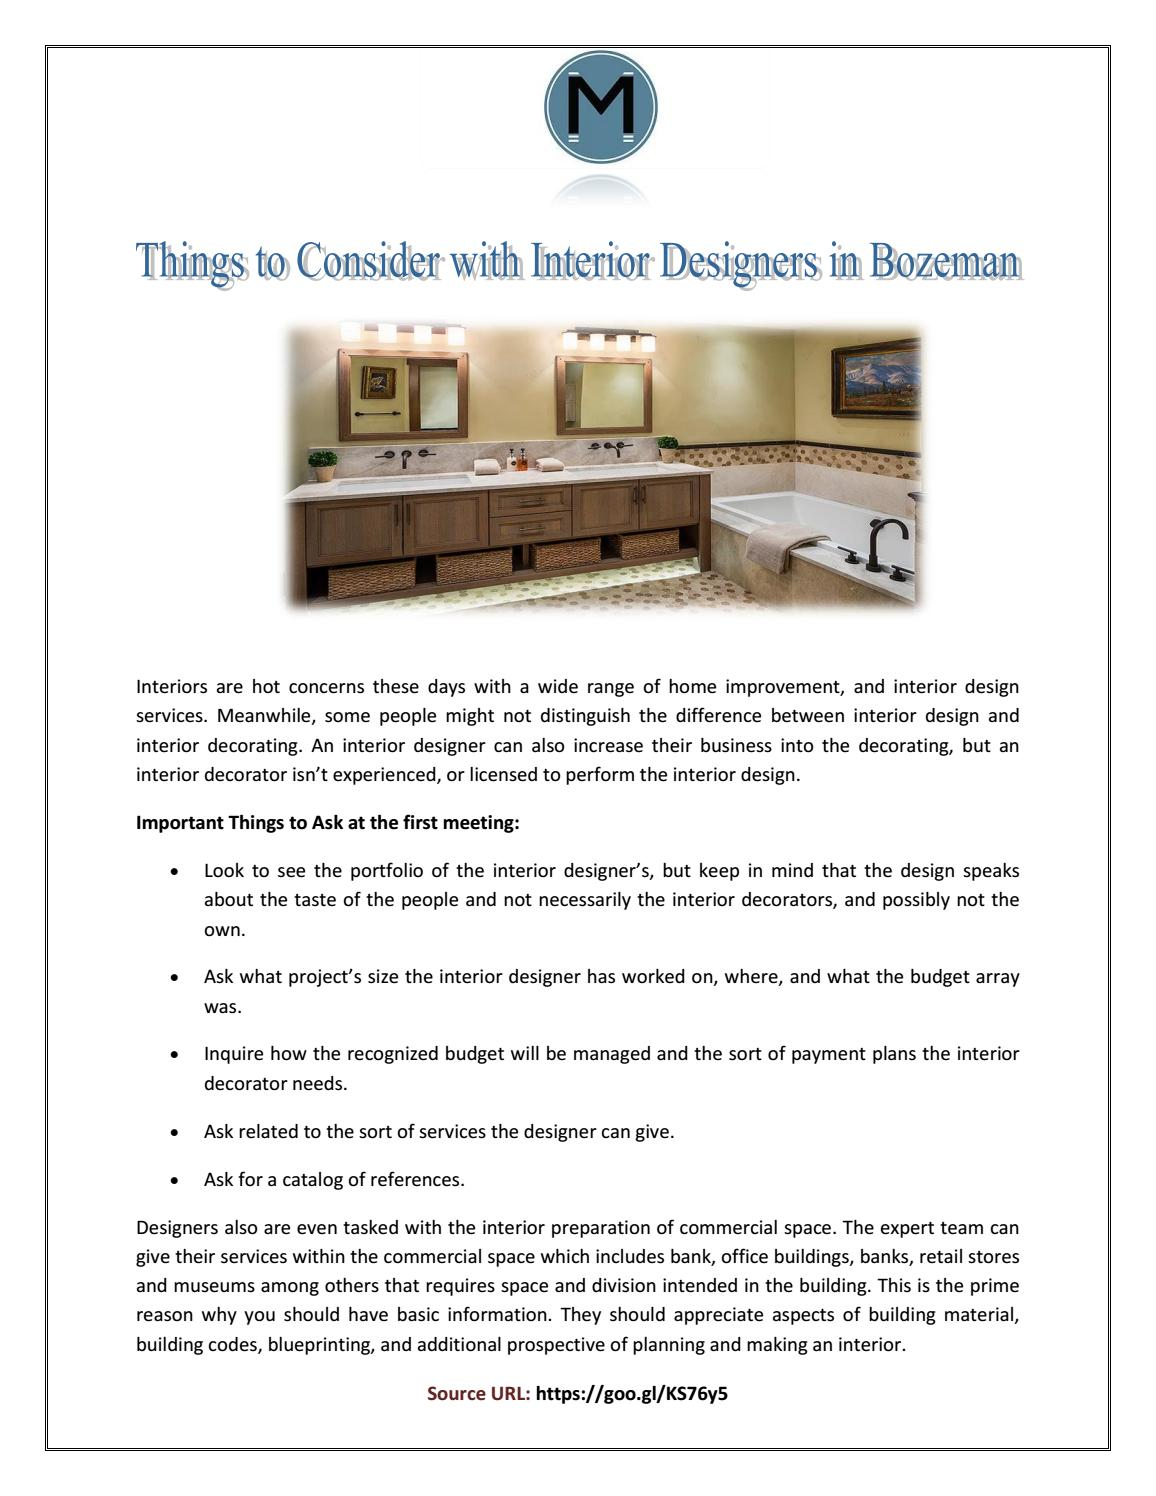 Interior Decoration Business Plan Things To Consider With Interior Designers In Bozeman By